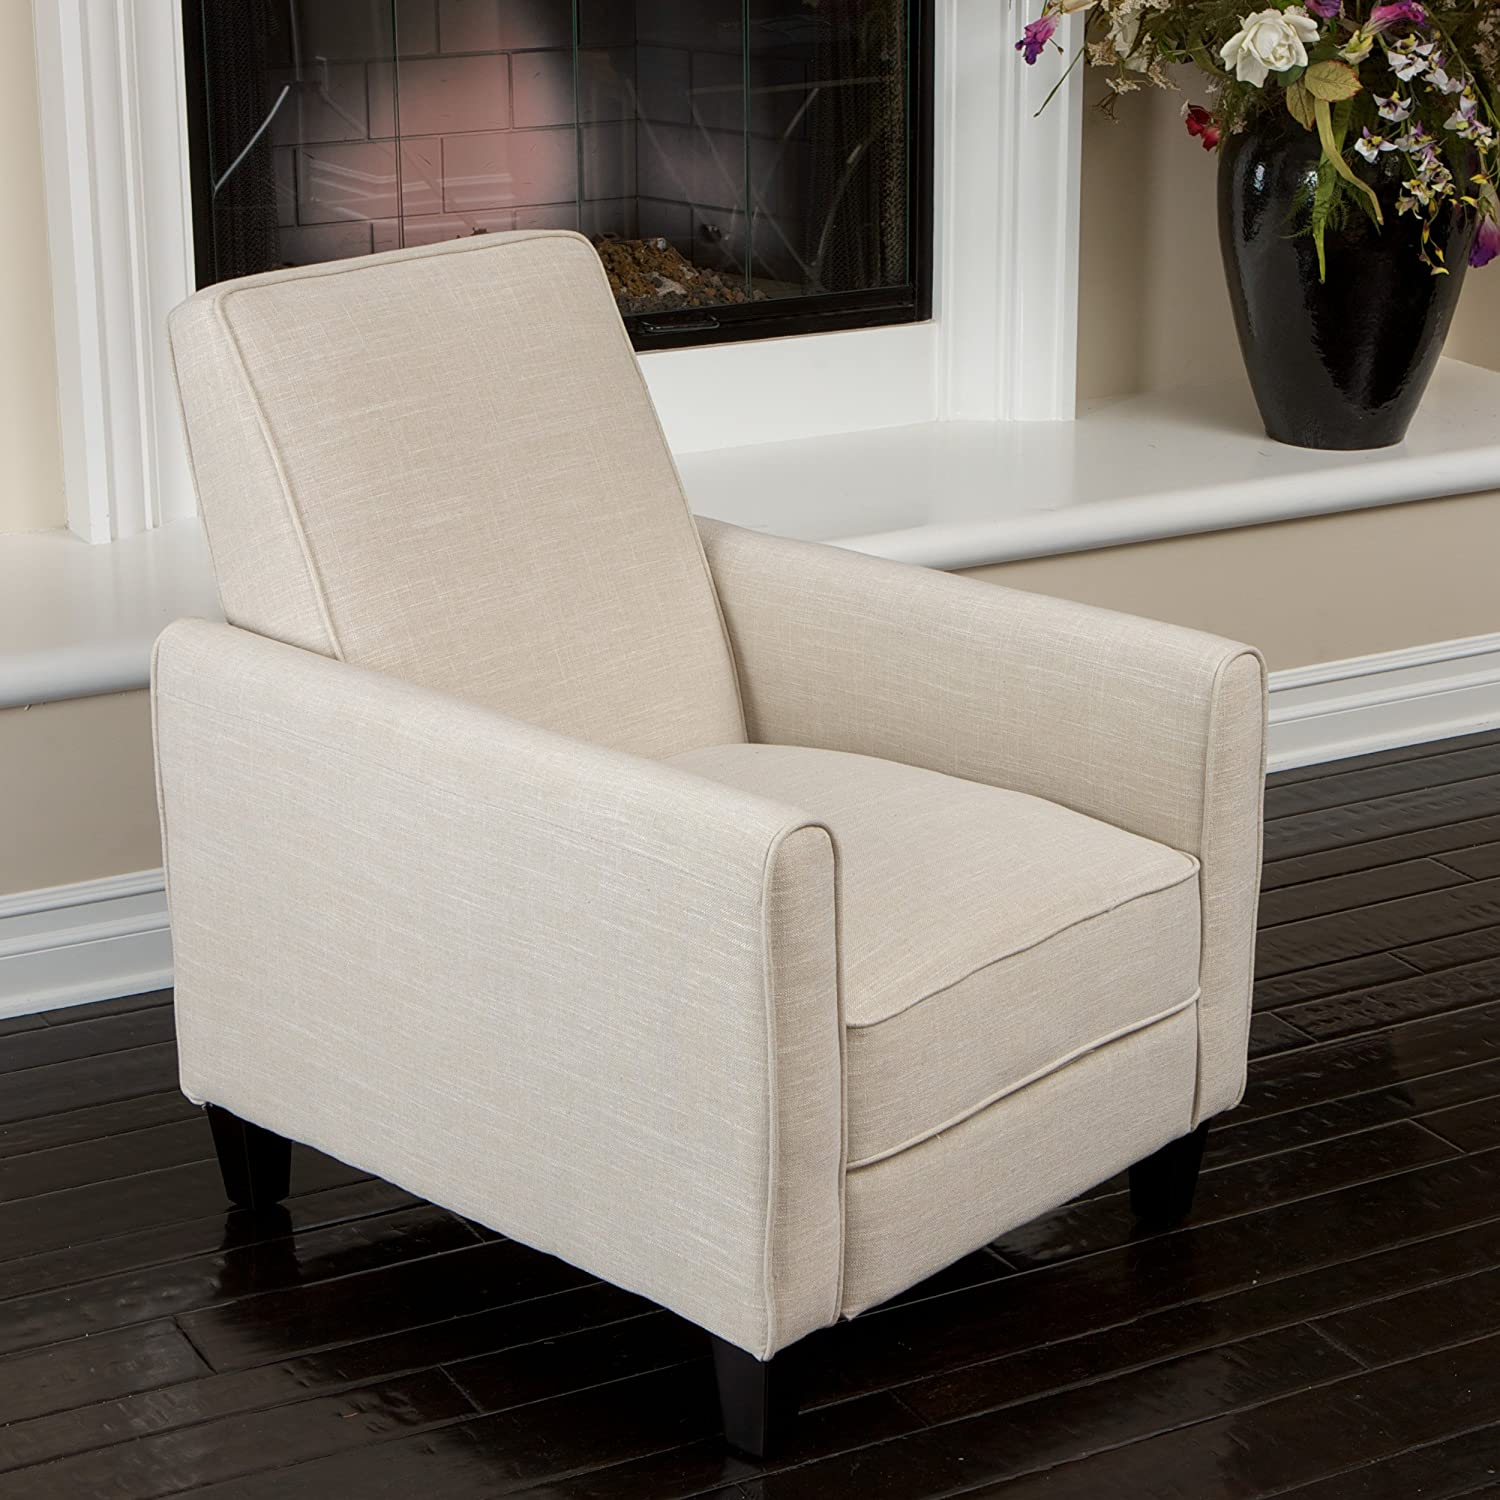 Amazon.com: Lucas Sleek Modern Beige Fabric Upholstered Recliner Club Chair:  Kitchen U0026 Dining